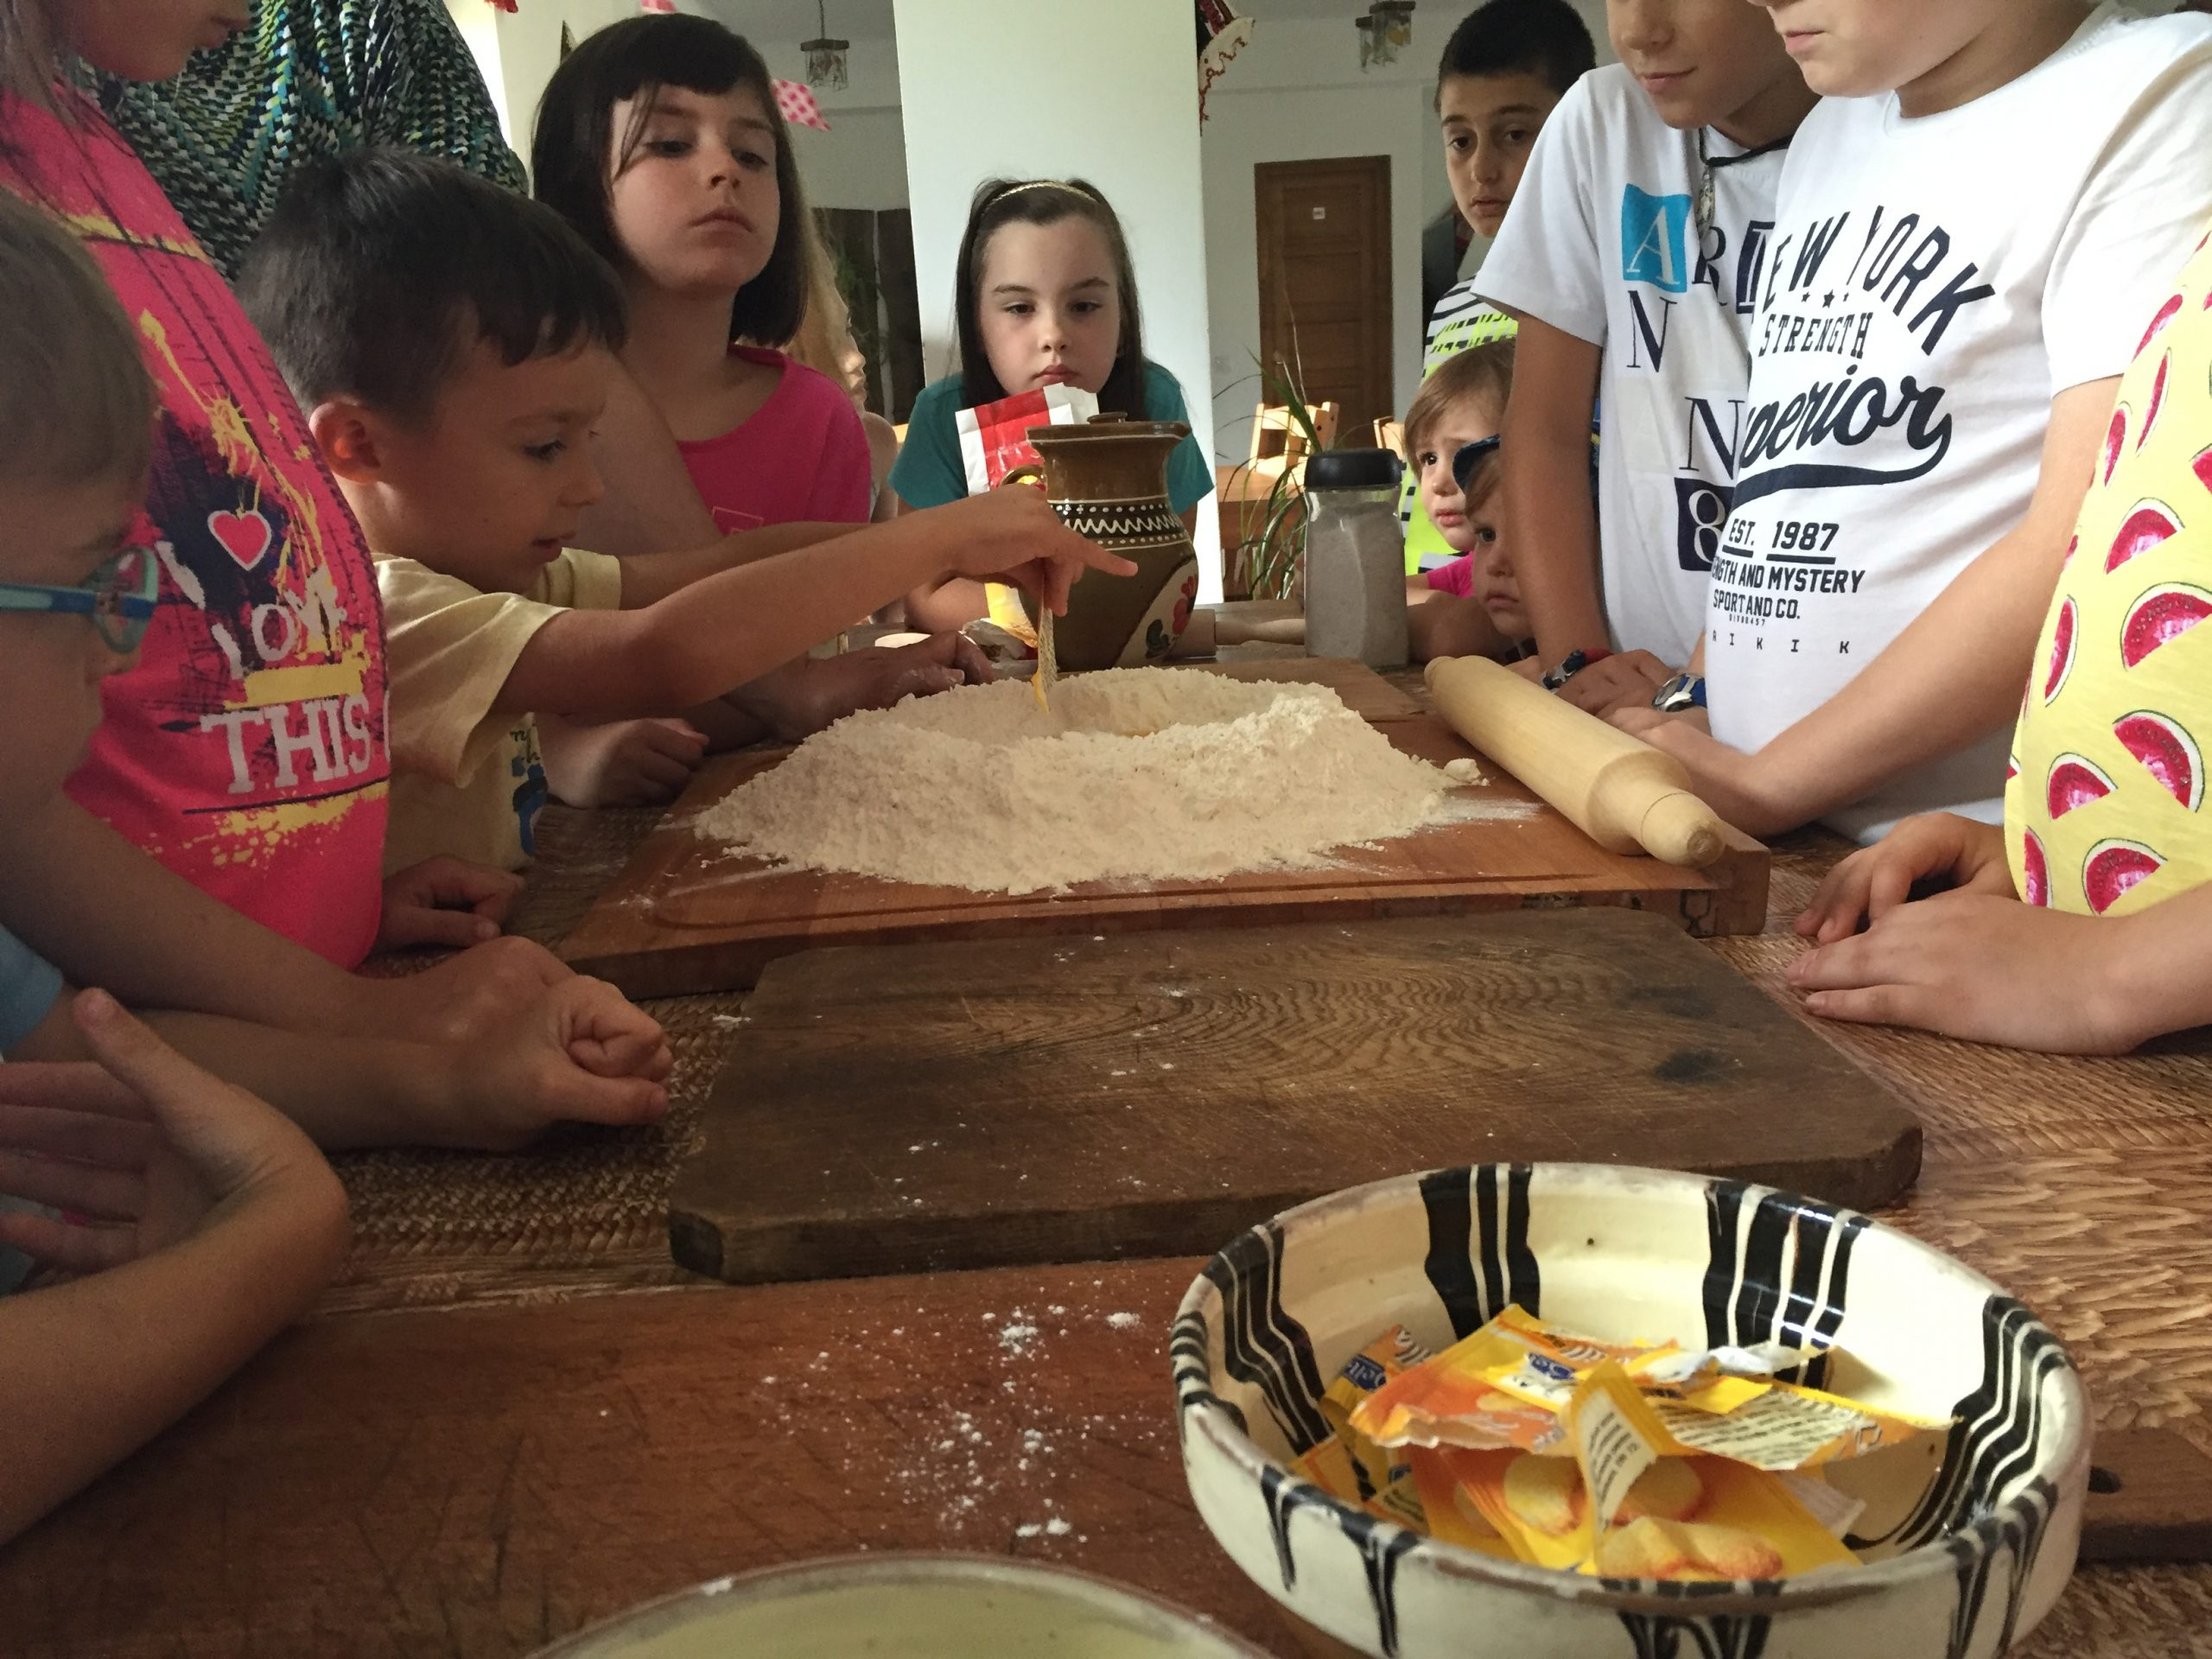 https://camps4kids.ro/wp-content/uploads/2016/10/IMG_9193-scaled.jpg